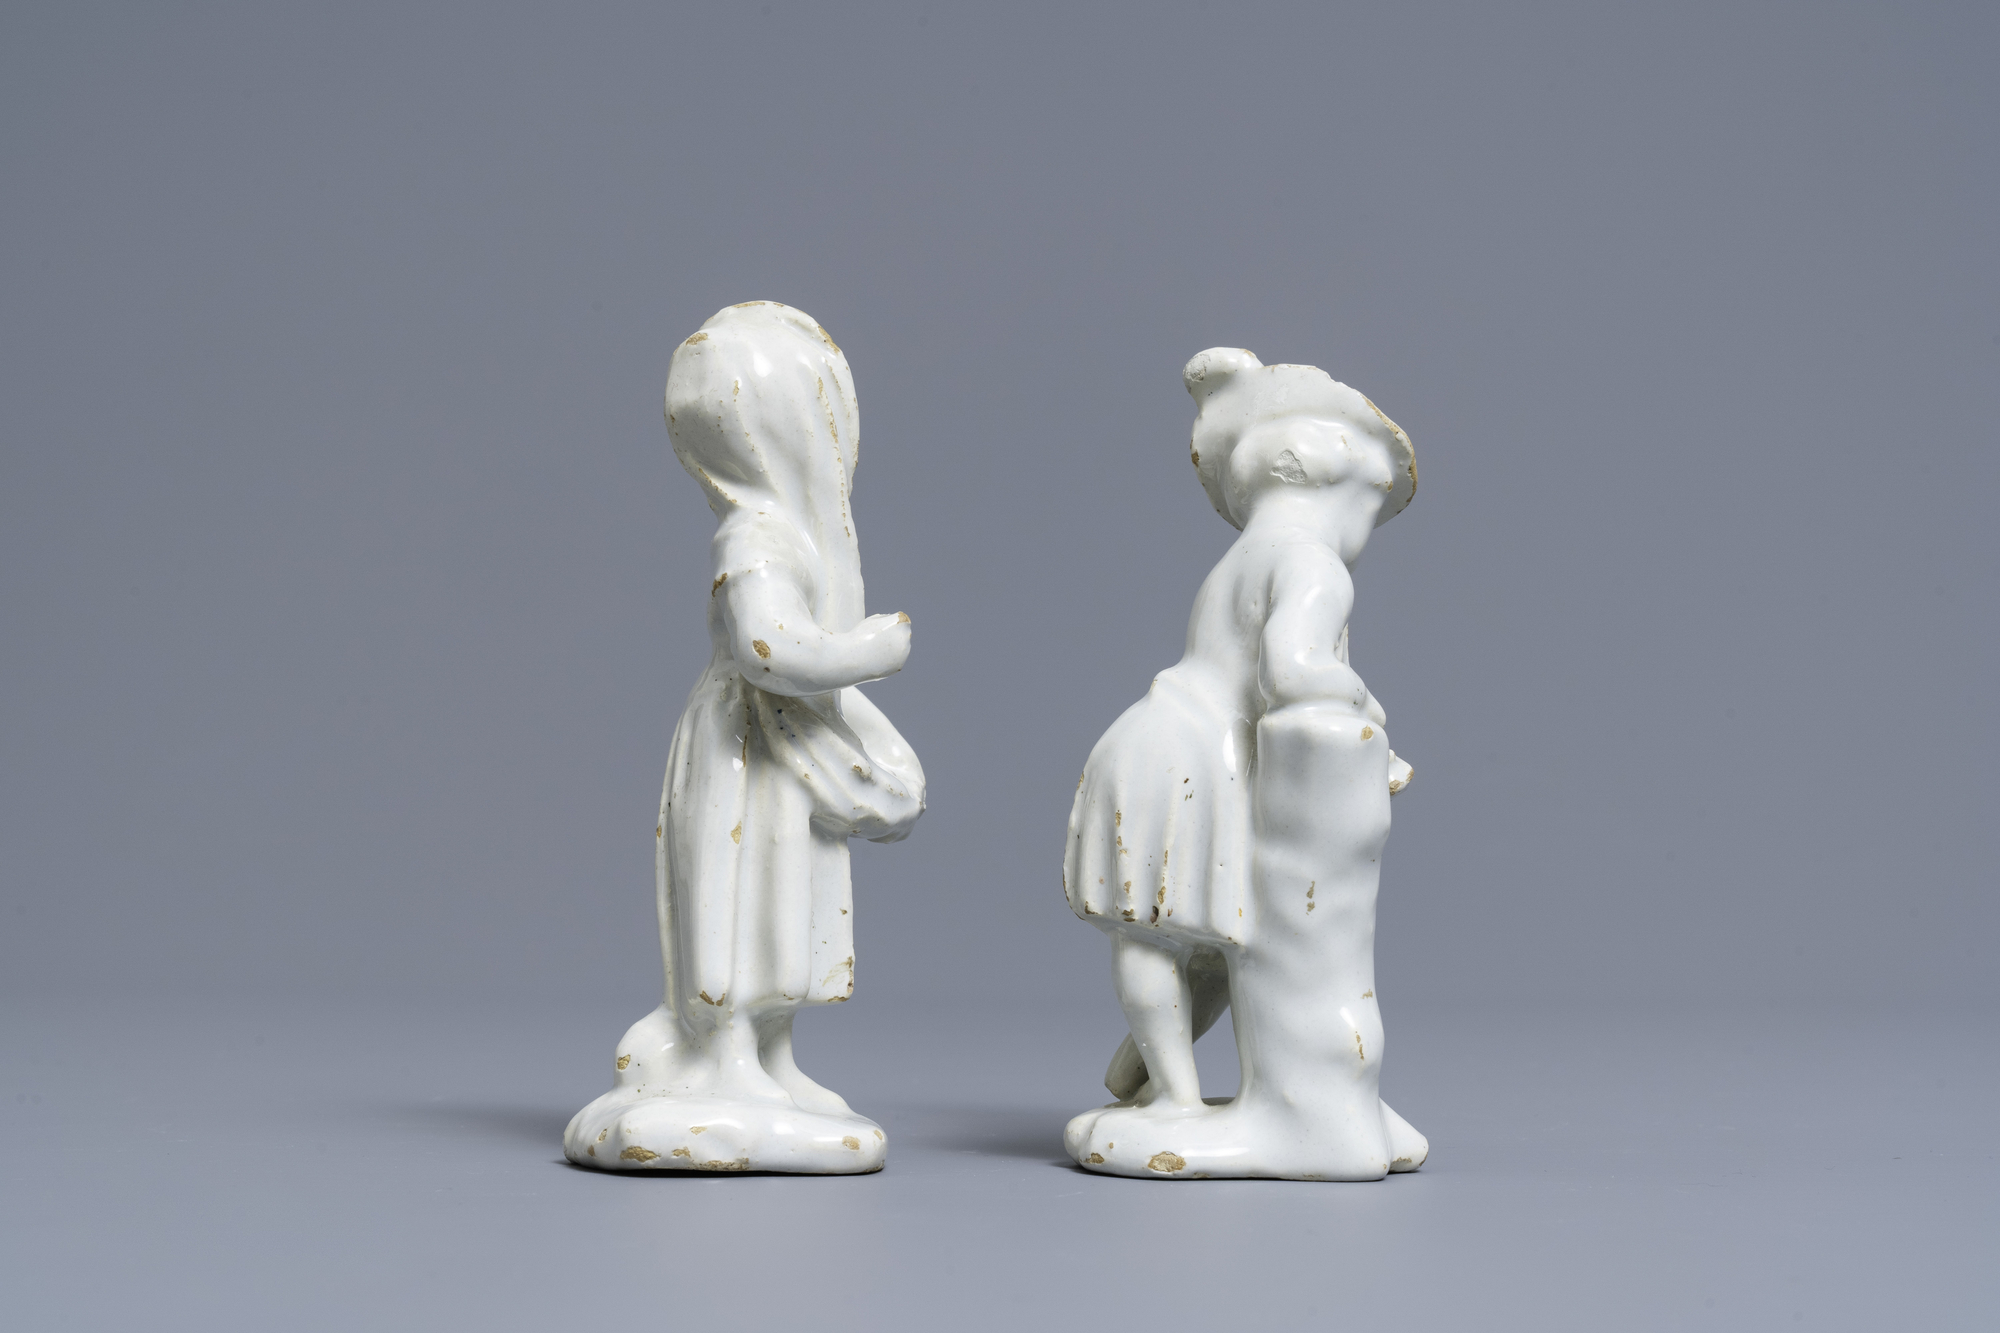 Two white Dutch Delftware figures of a boy and a girl, 18th C. - Image 3 of 7